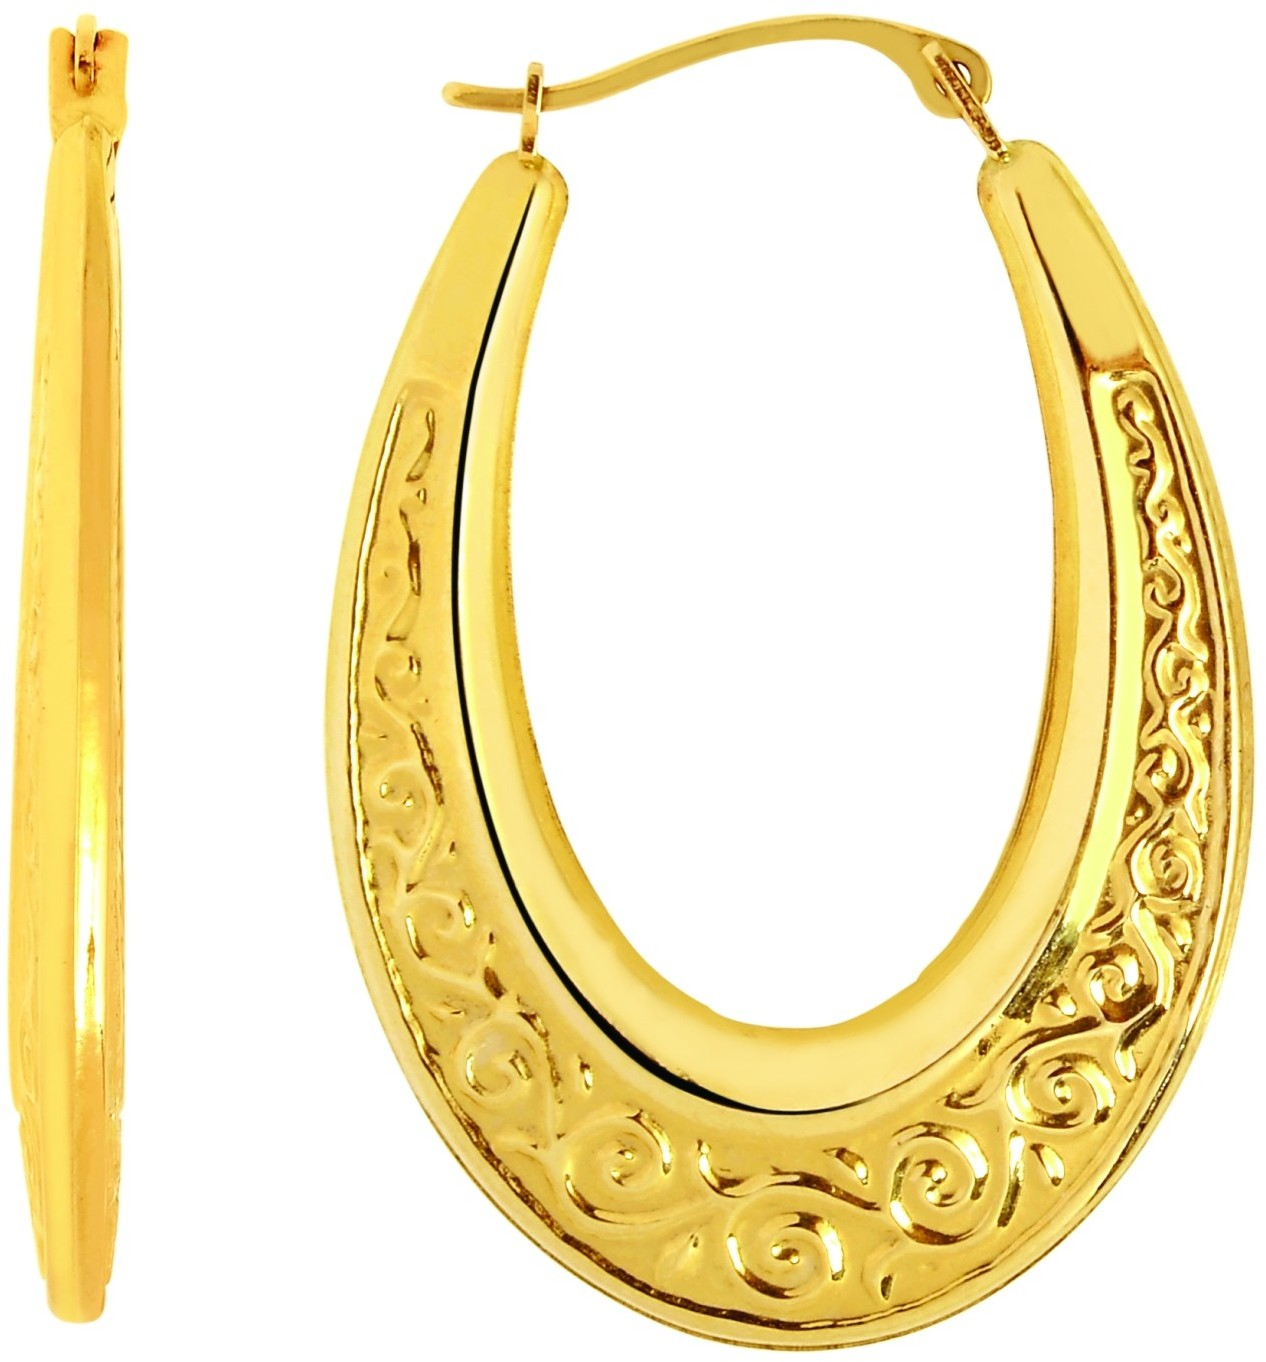 14K Yellow Gold Polished Textured Graduated Oval Like Hoop Earrings